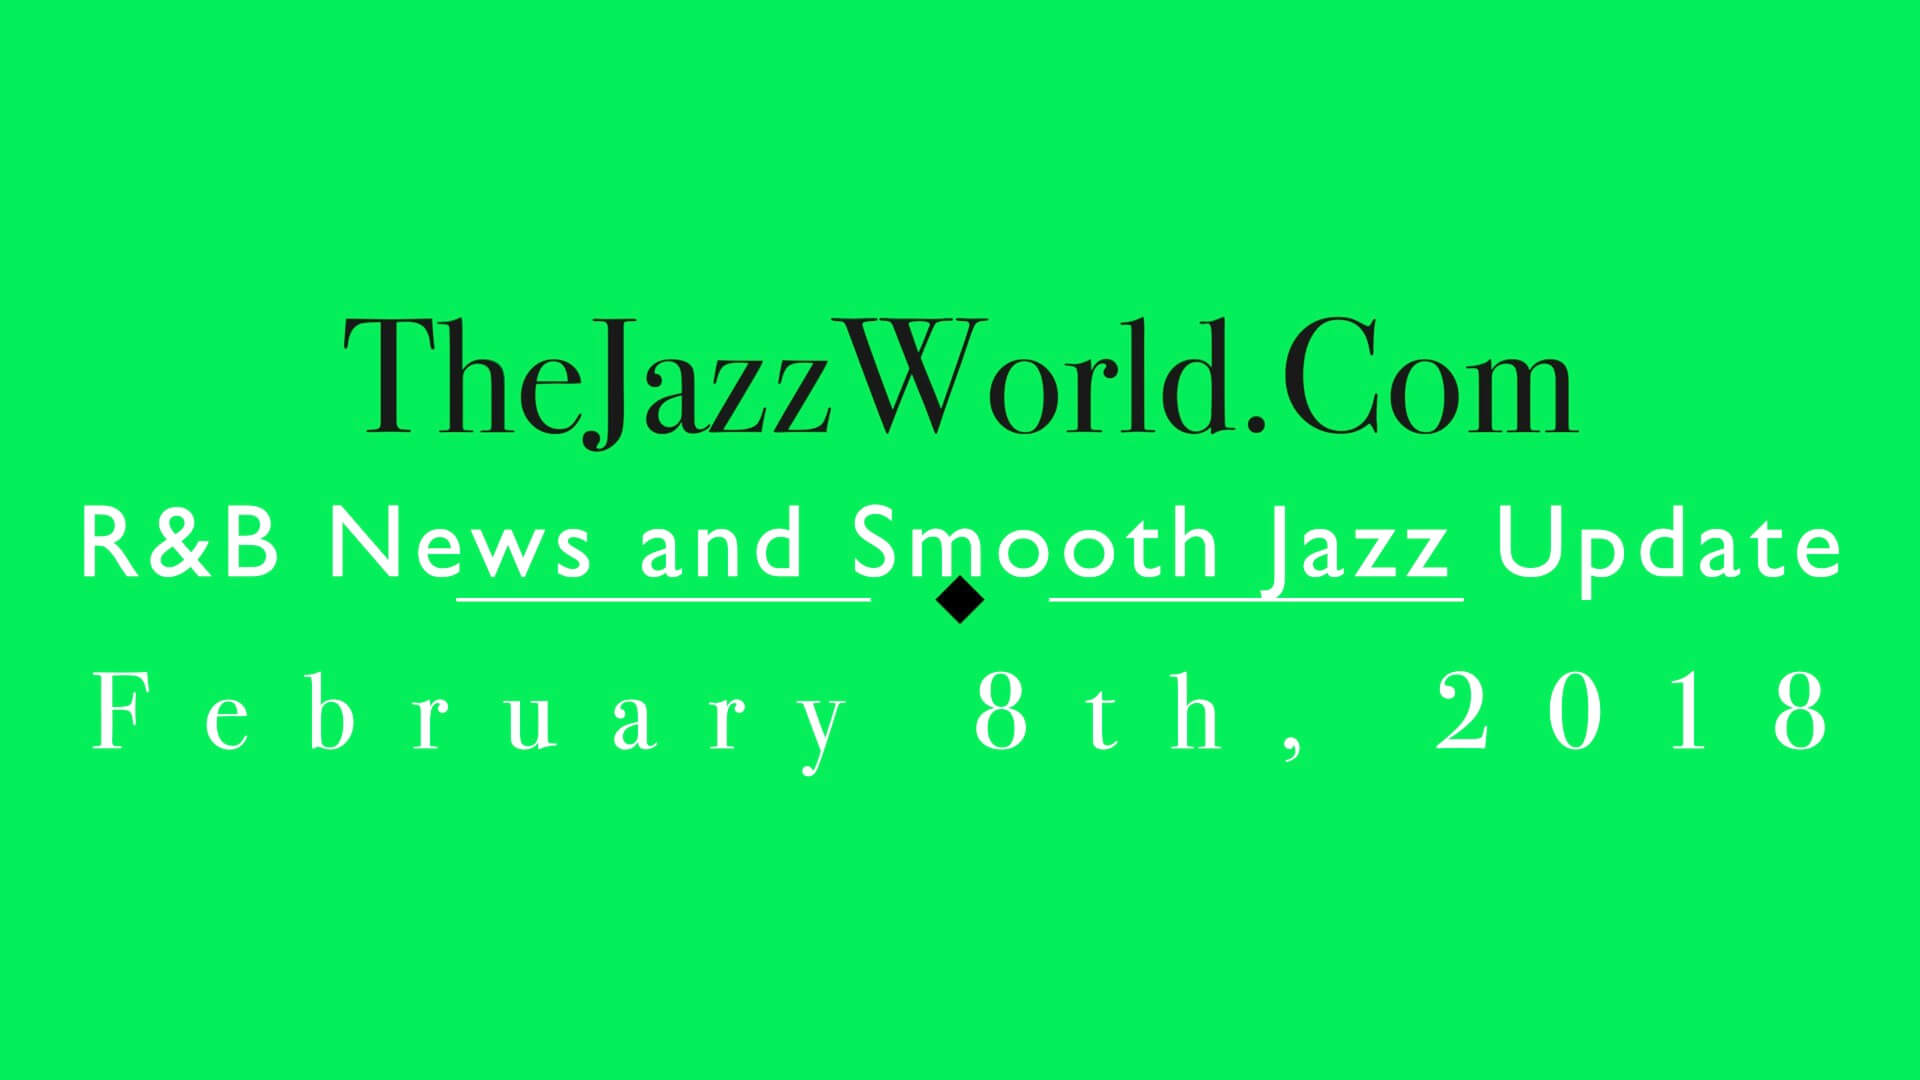 The Jazz World Show 2:8:18